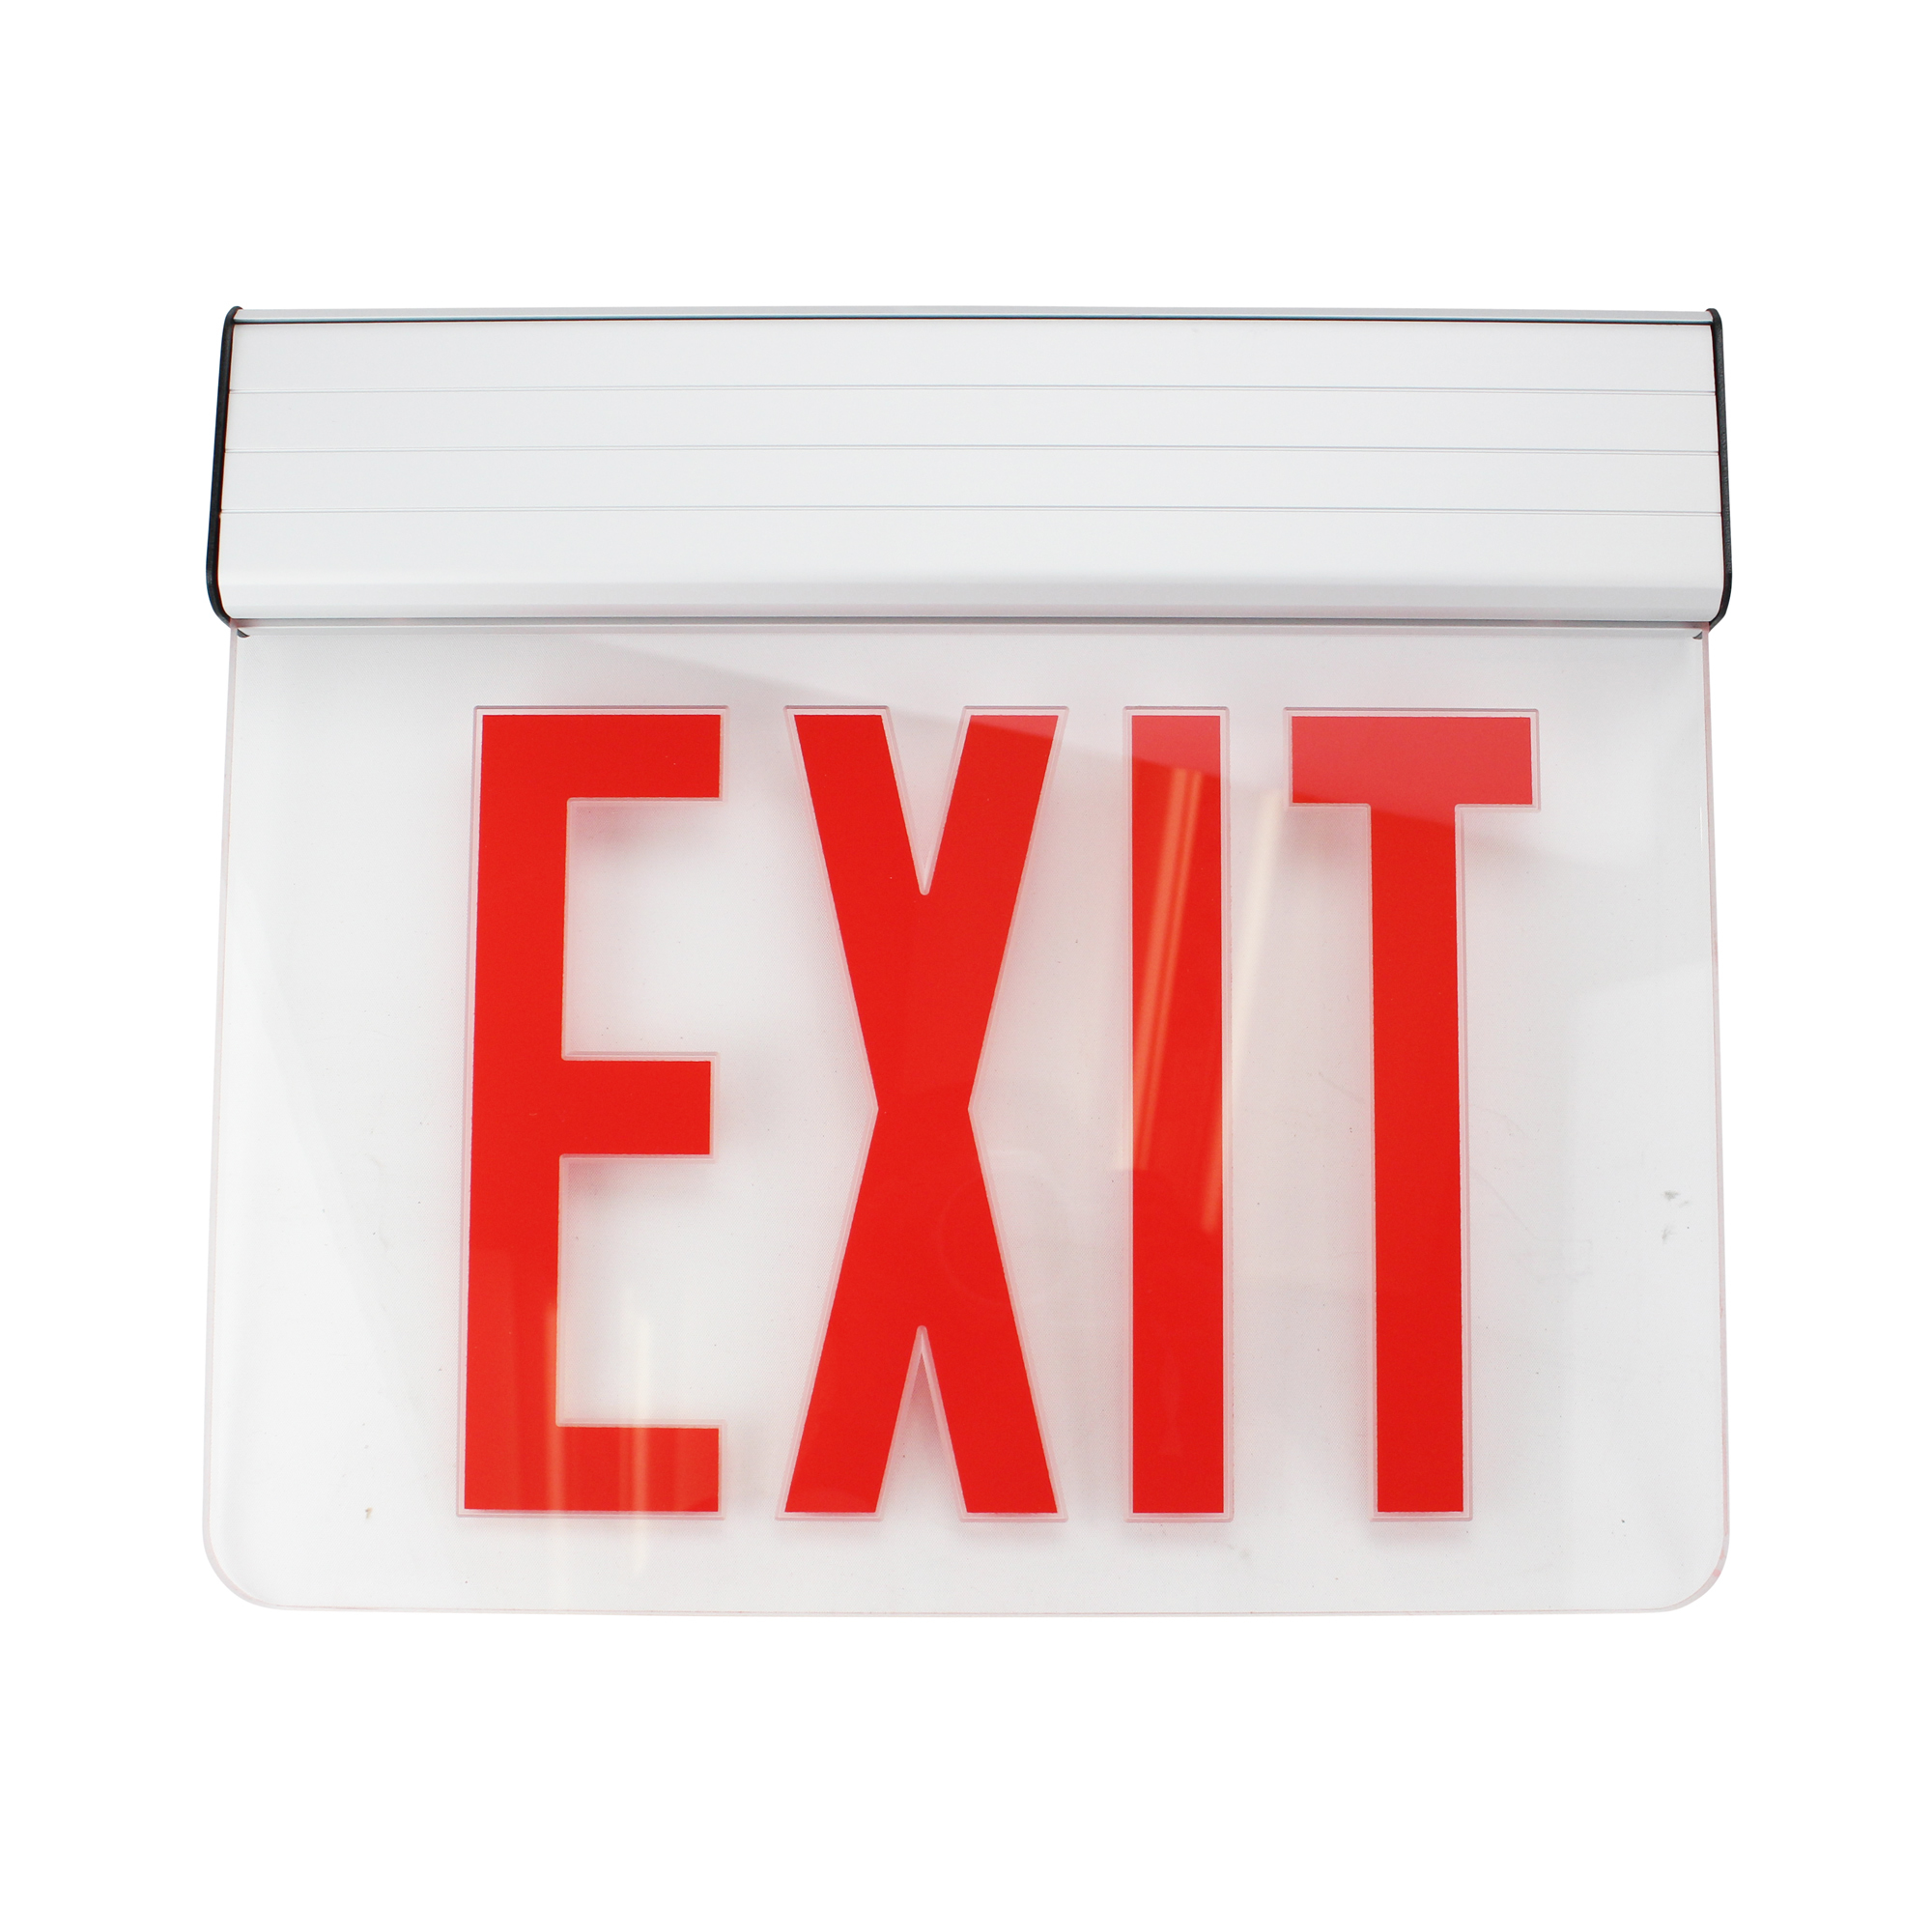 Navilite Nnyxes1Raa Exit & Emergency Lighting, Ny Edge Lit Led Exit Sign, Red Letters, Clear Glass